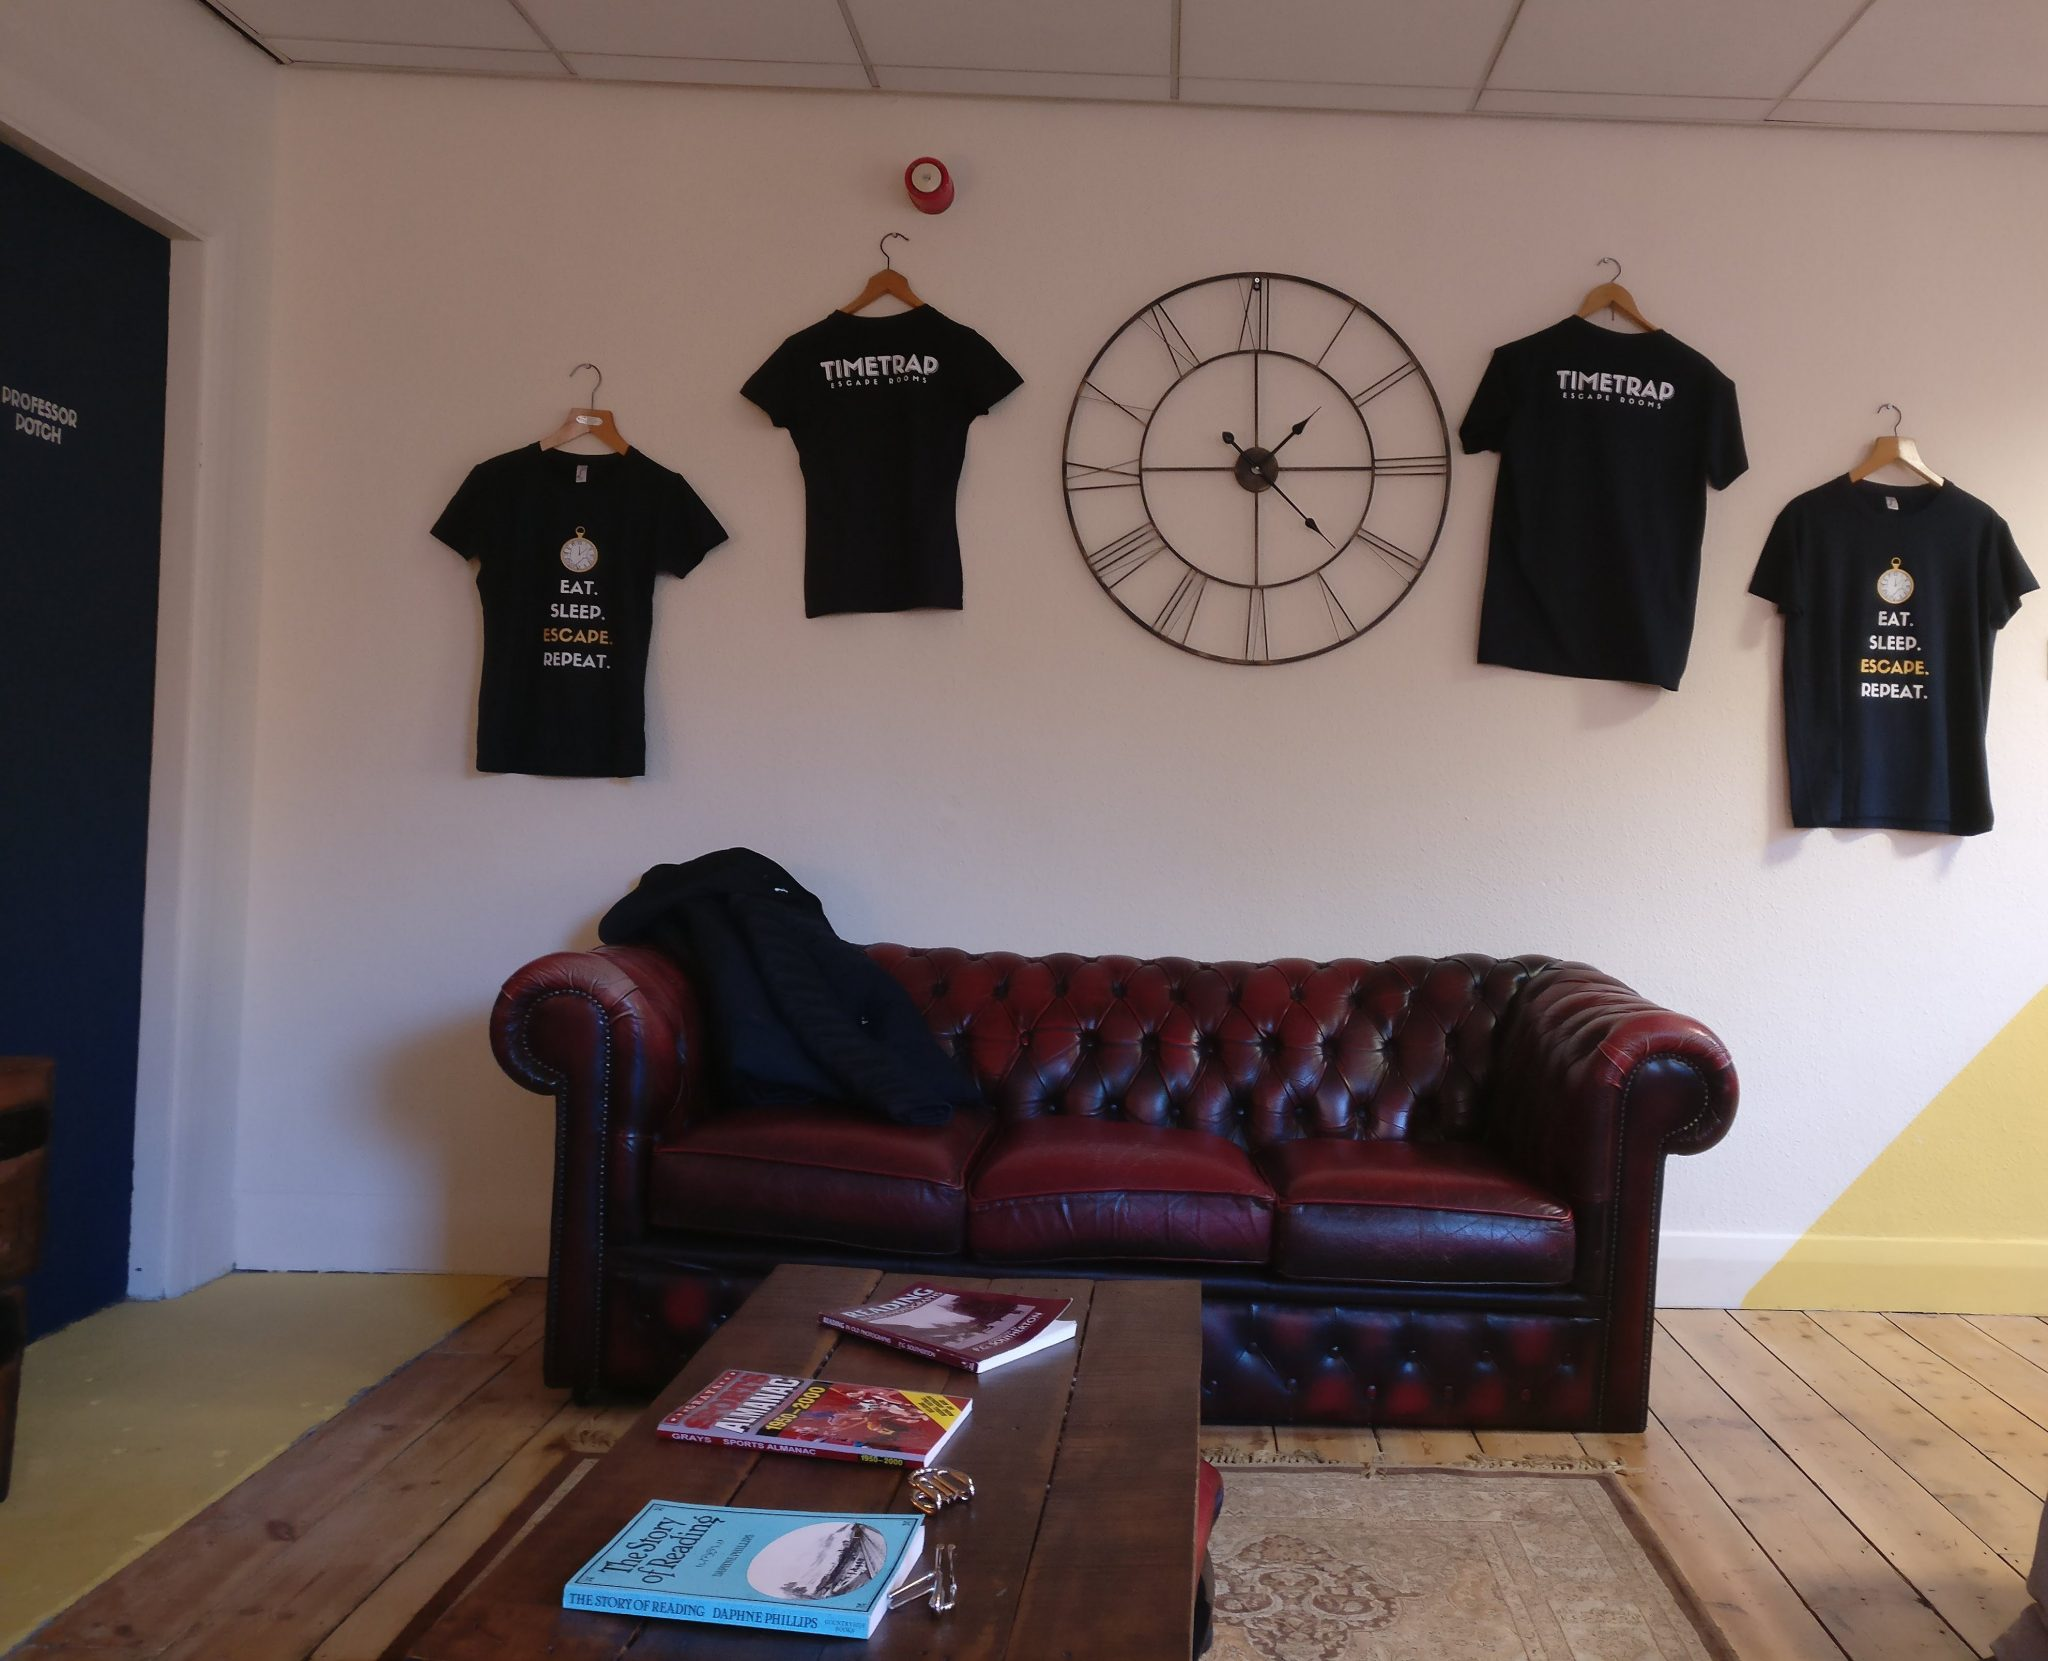 The lobby area with t-shirts for sale